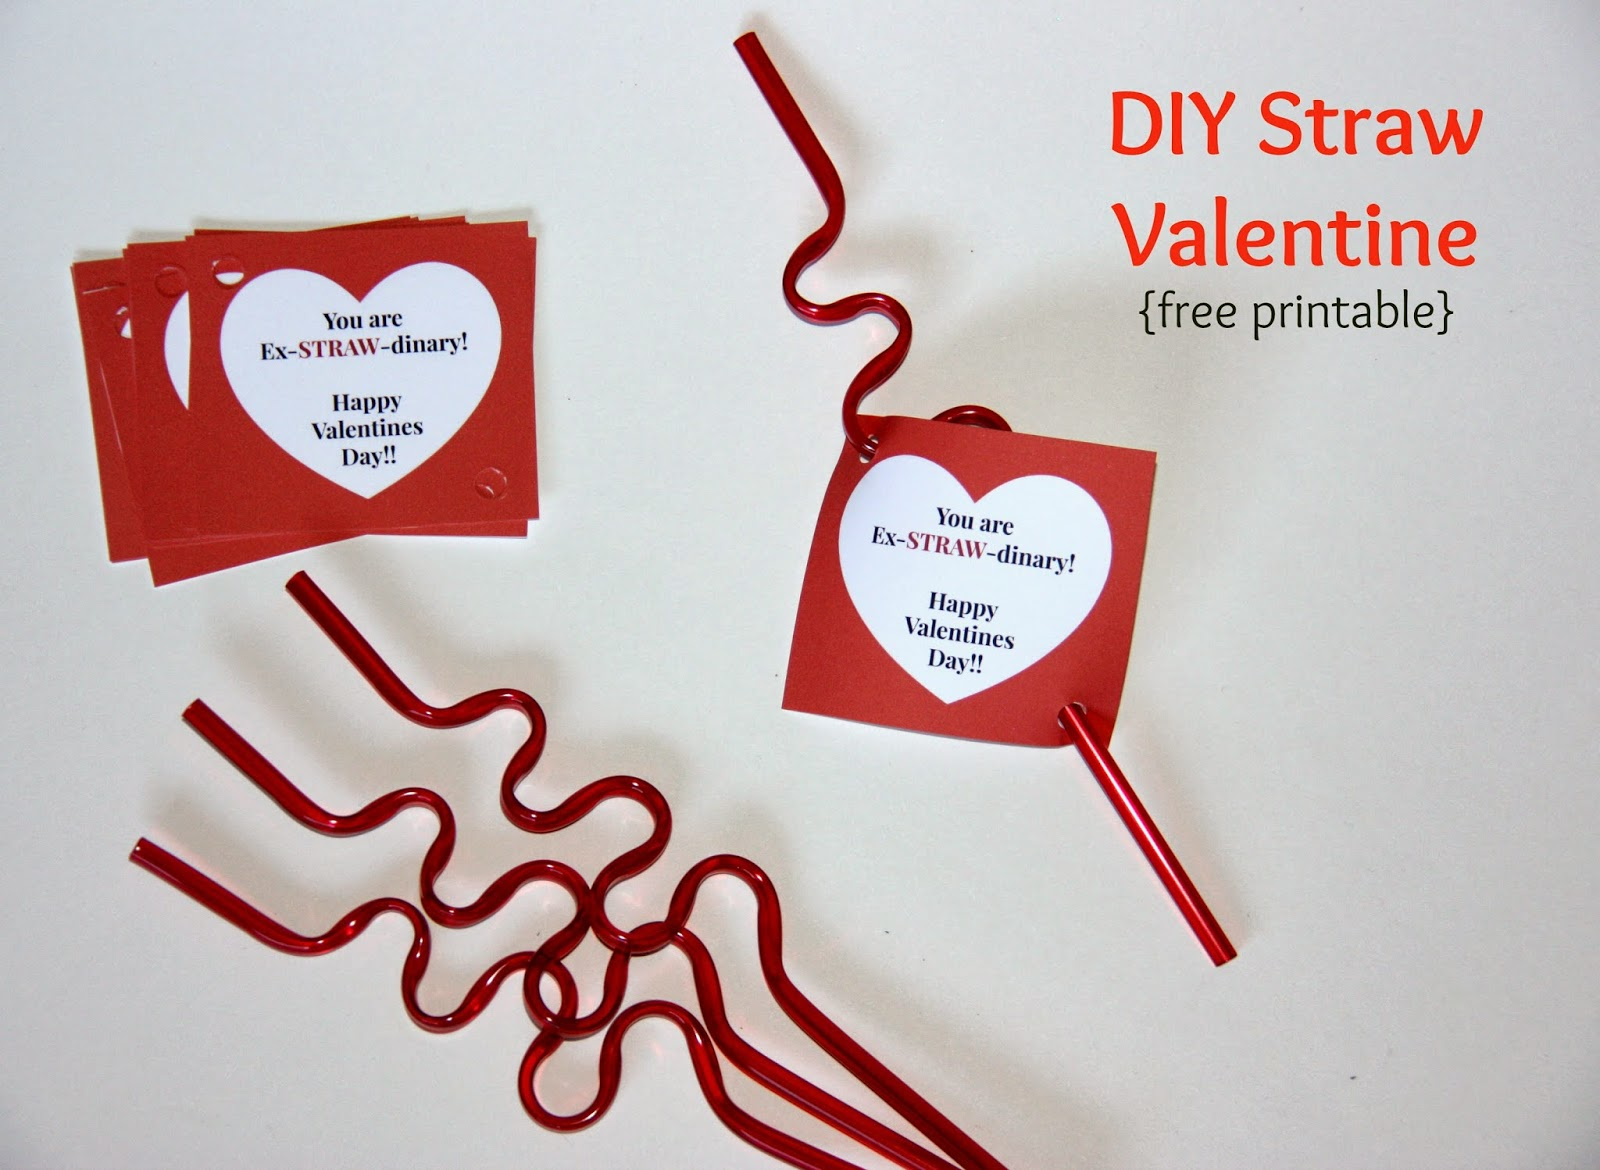 You are ex-STRAW-dinary!  Straw Valentine Printable